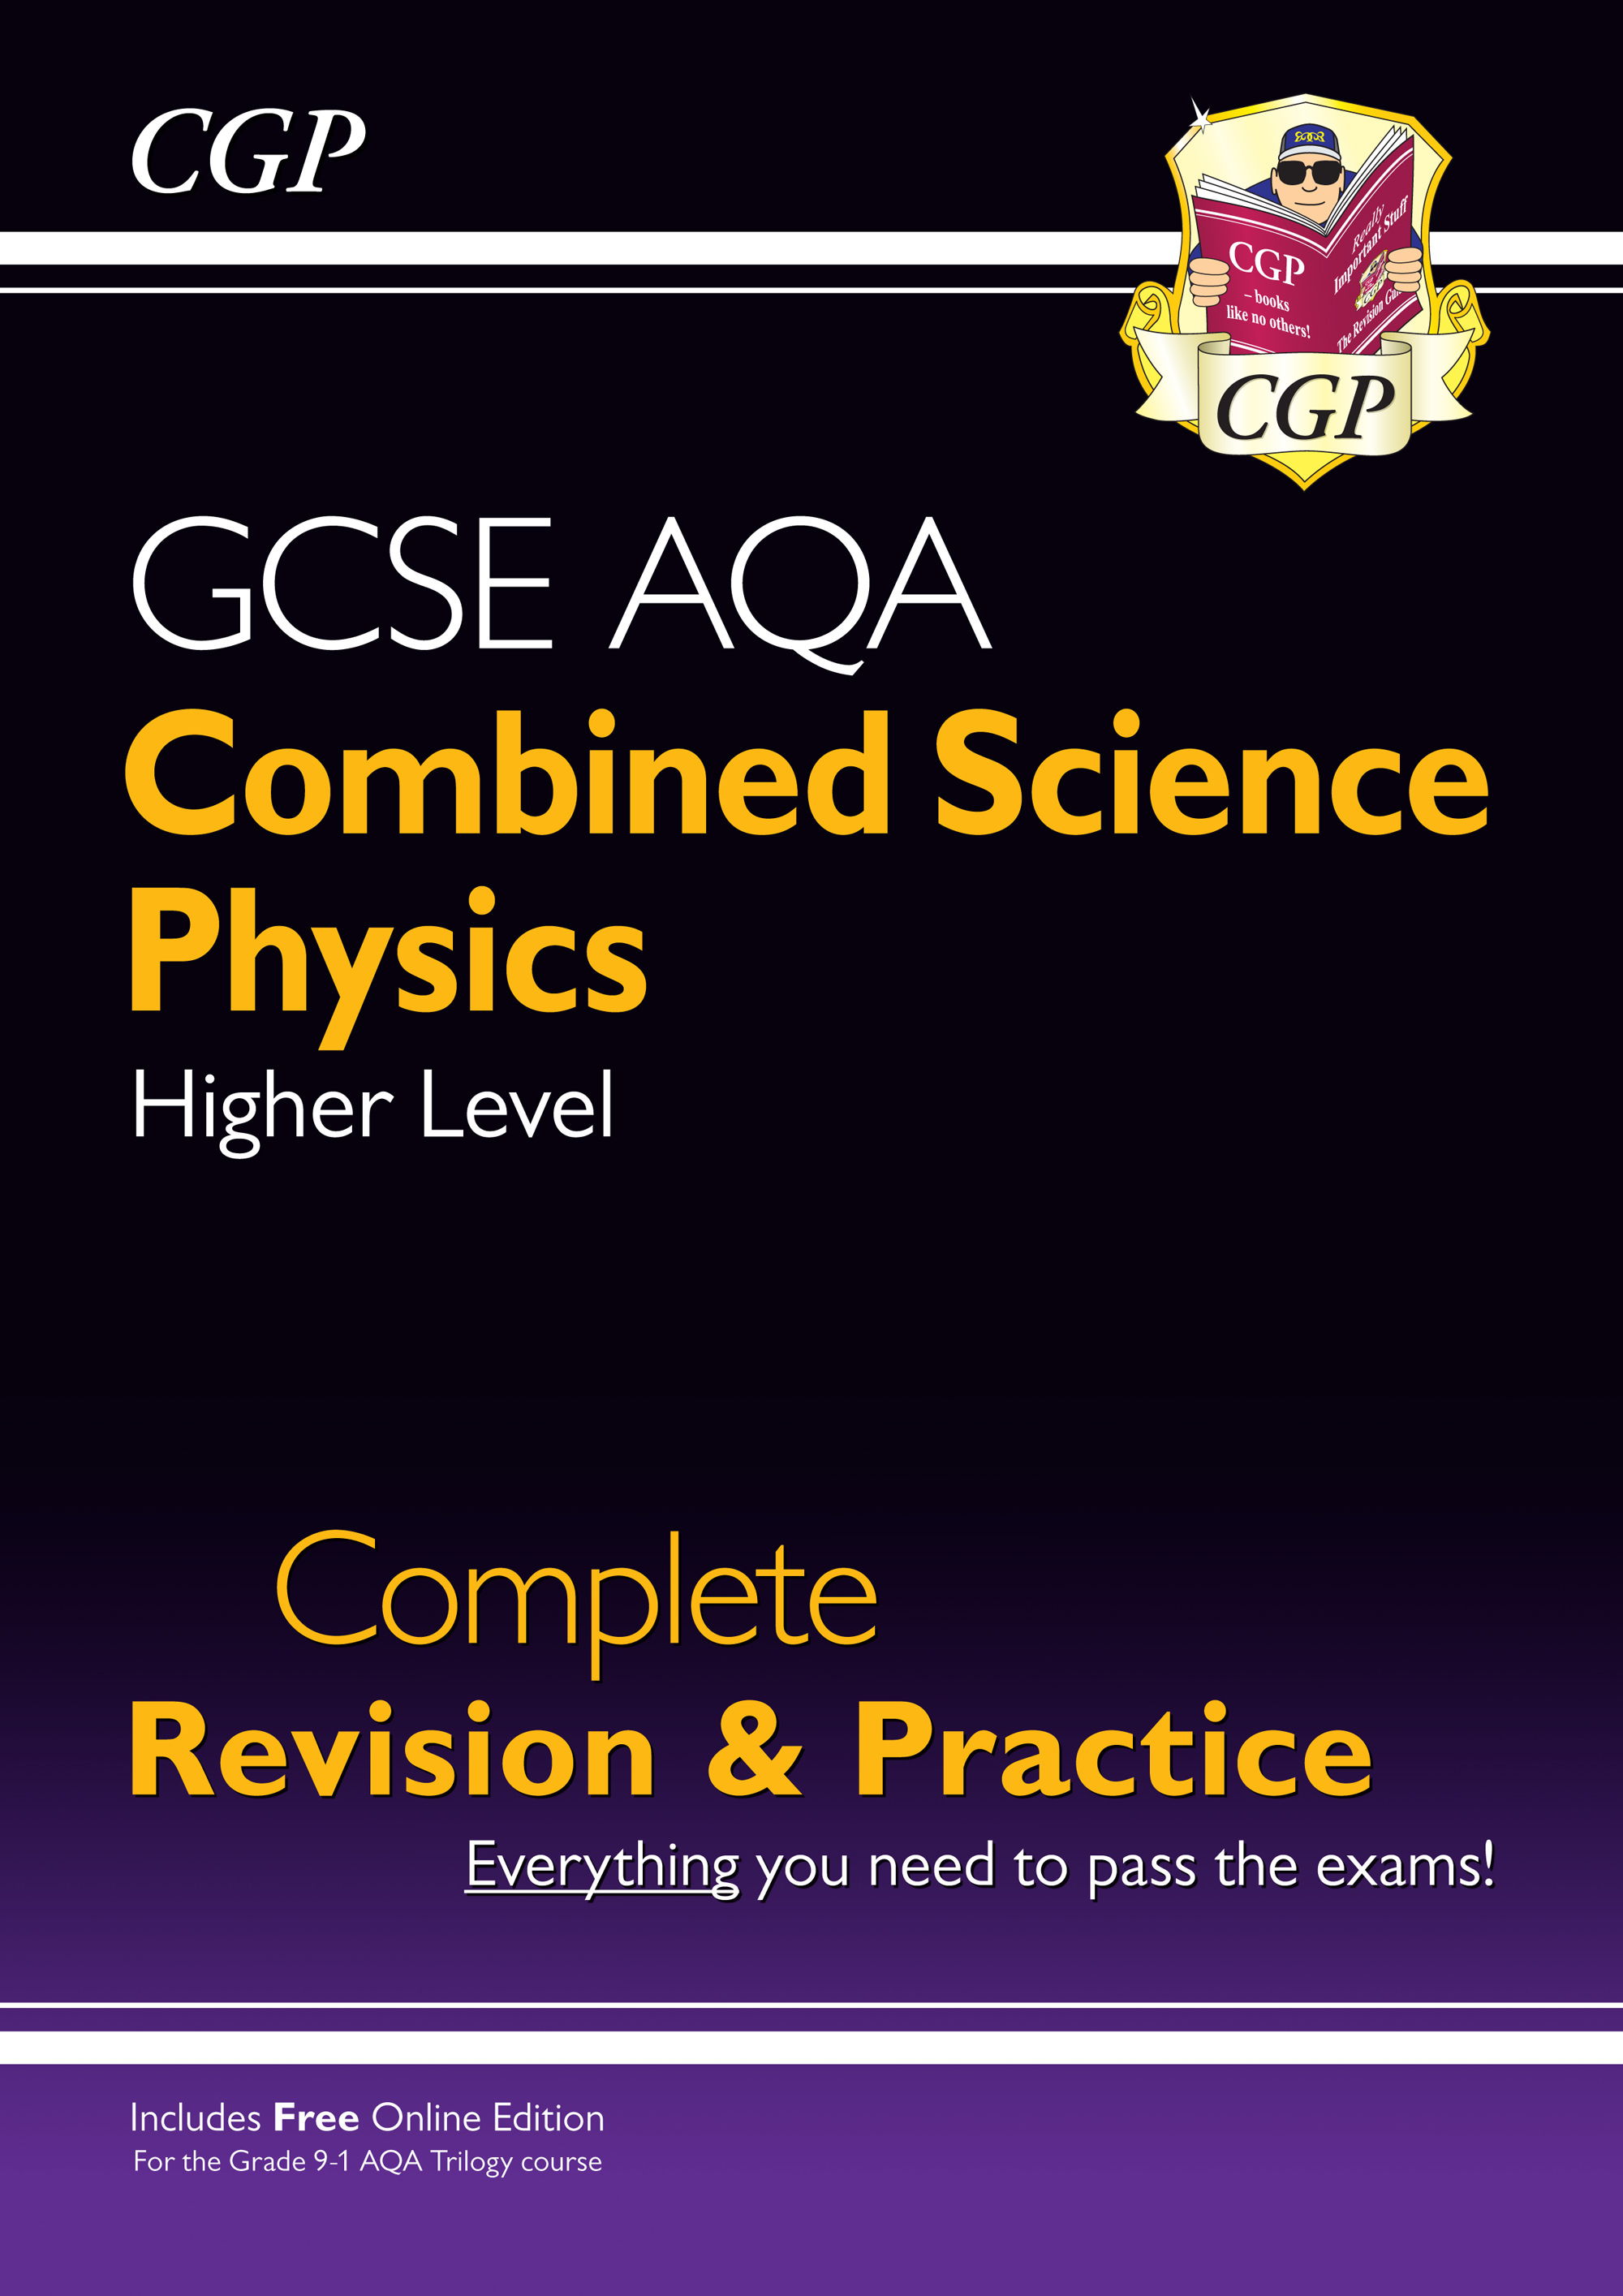 SCPAS41 - New 9-1 GCSE Combined Science: Physics AQA Higher Complete Revision & Practice with Online